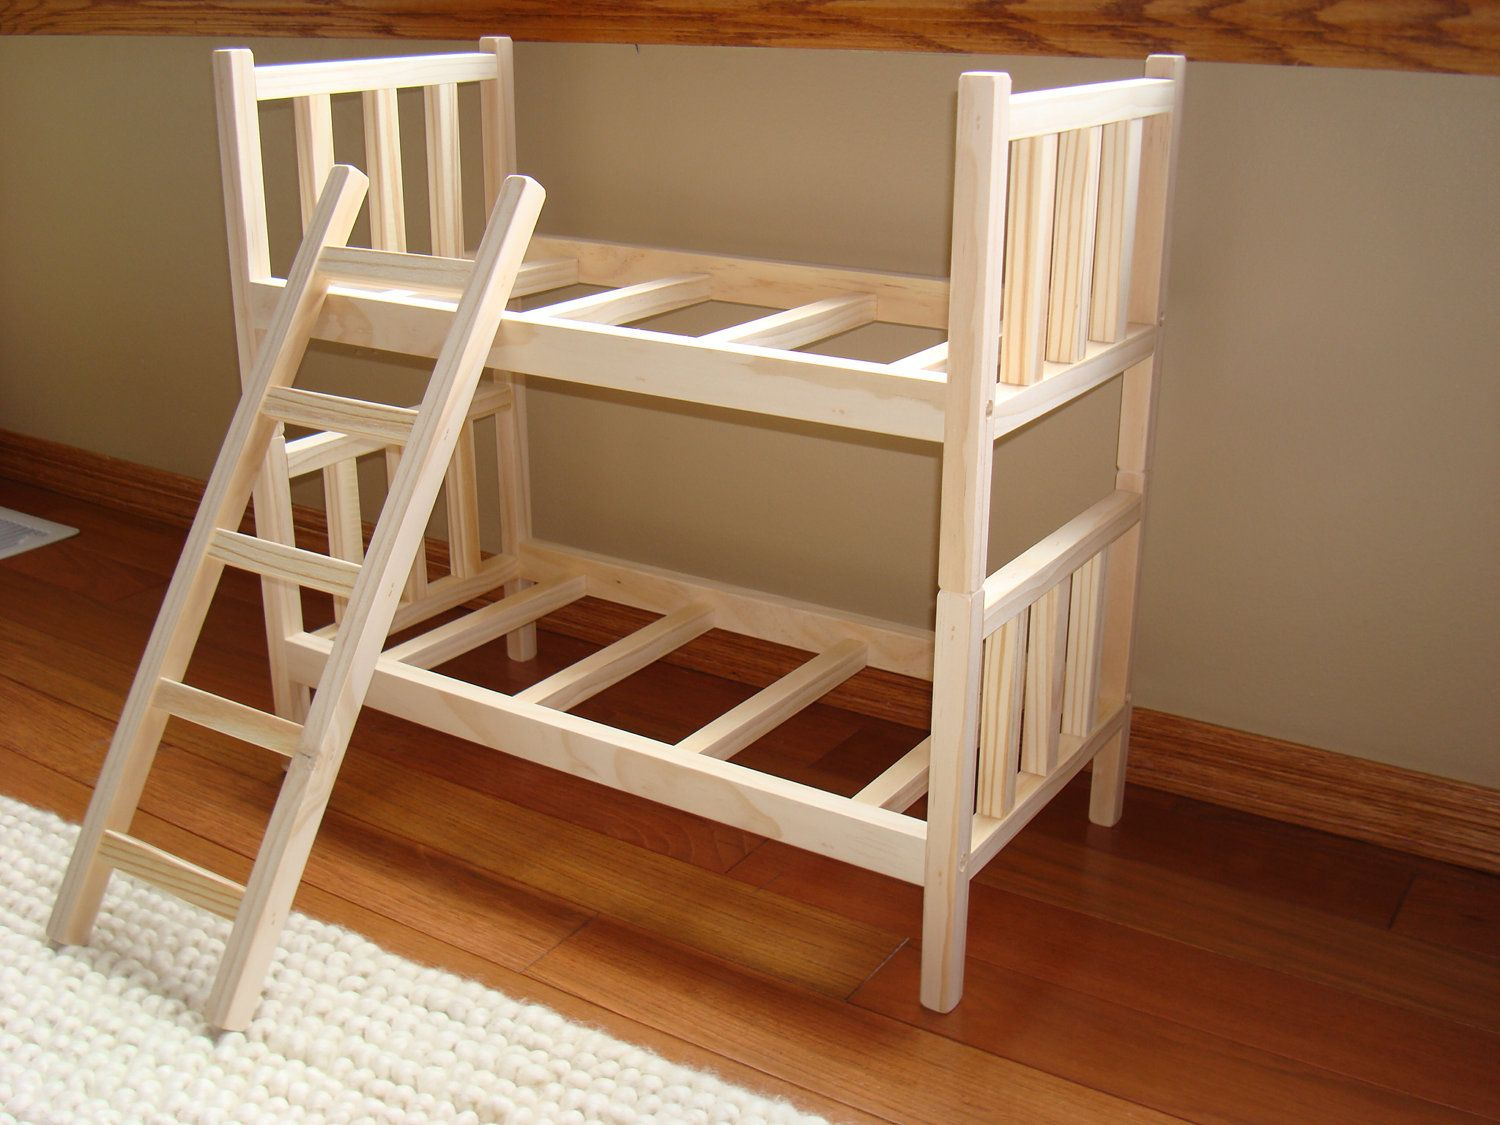 Handmade Barbie Furniture | Handmade Bunk Beds | Barbie ...